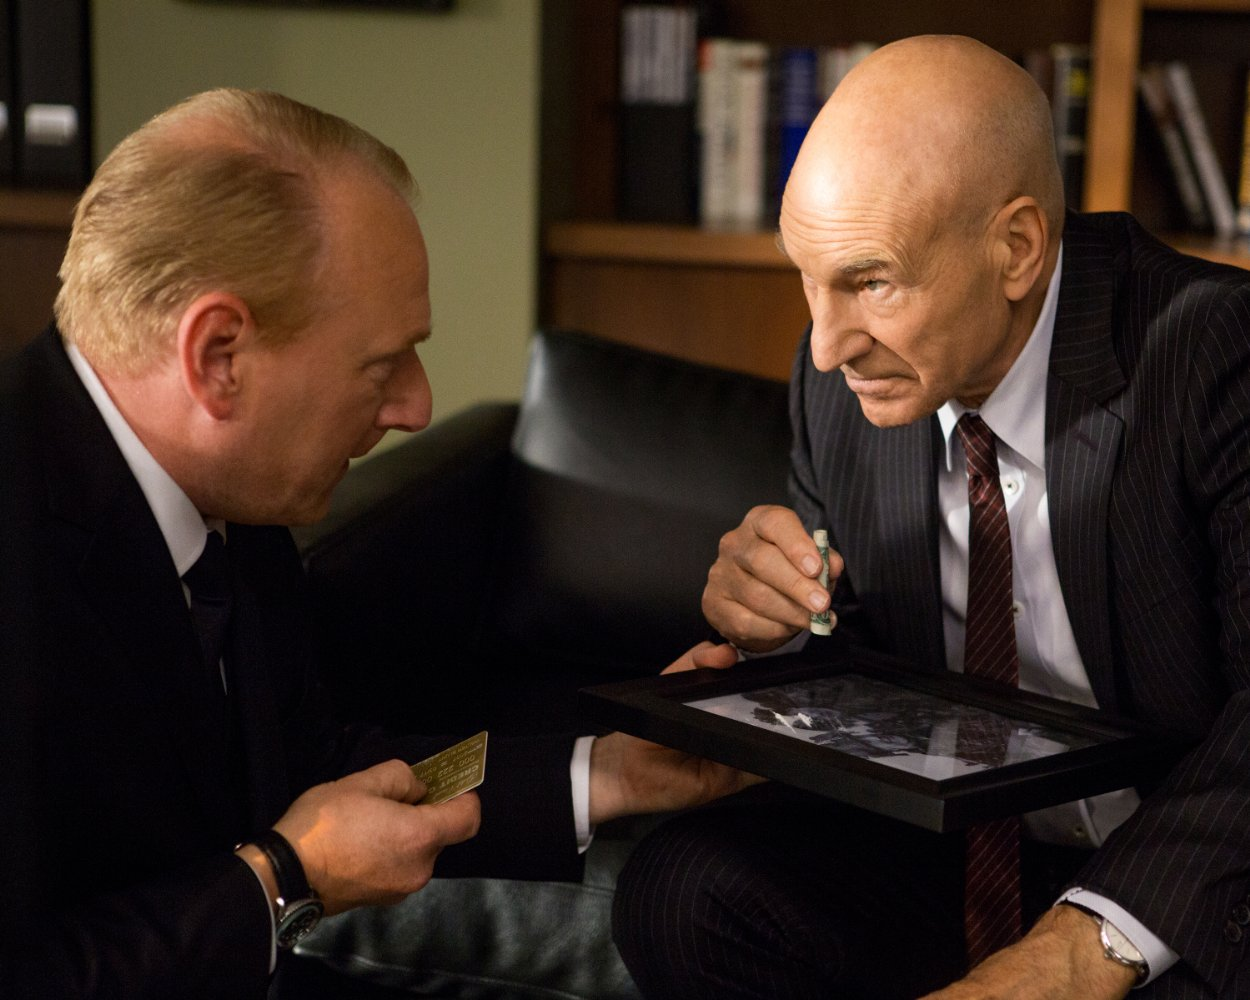 Patrick_Stewart_and_Adrian_Scarbo